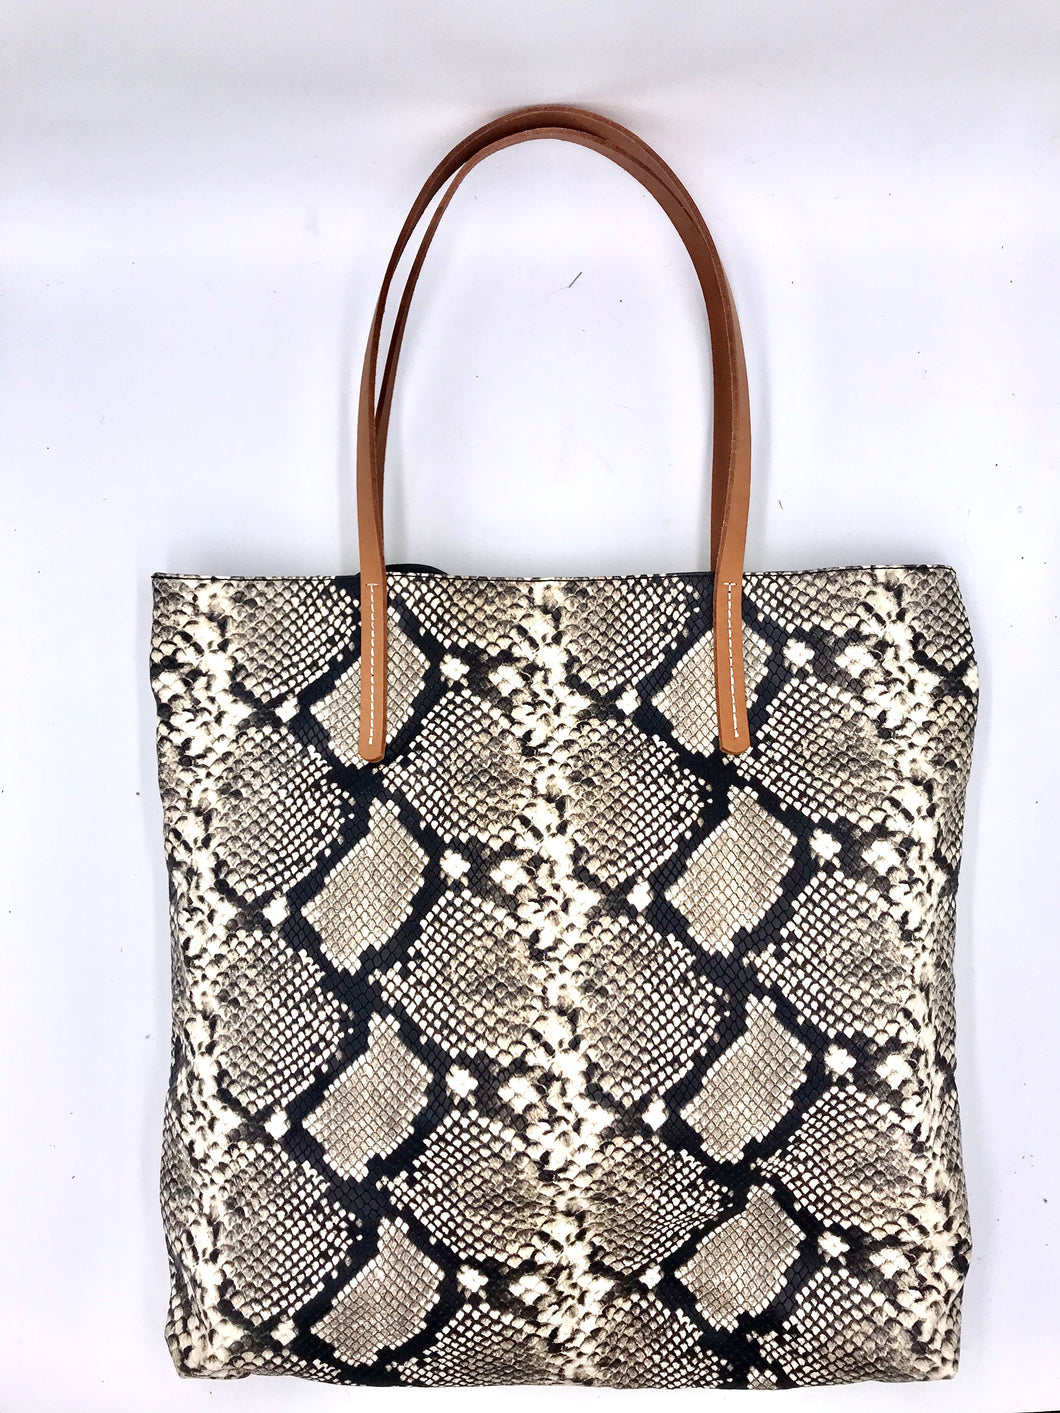 Homers - Snake Print Leather Tote